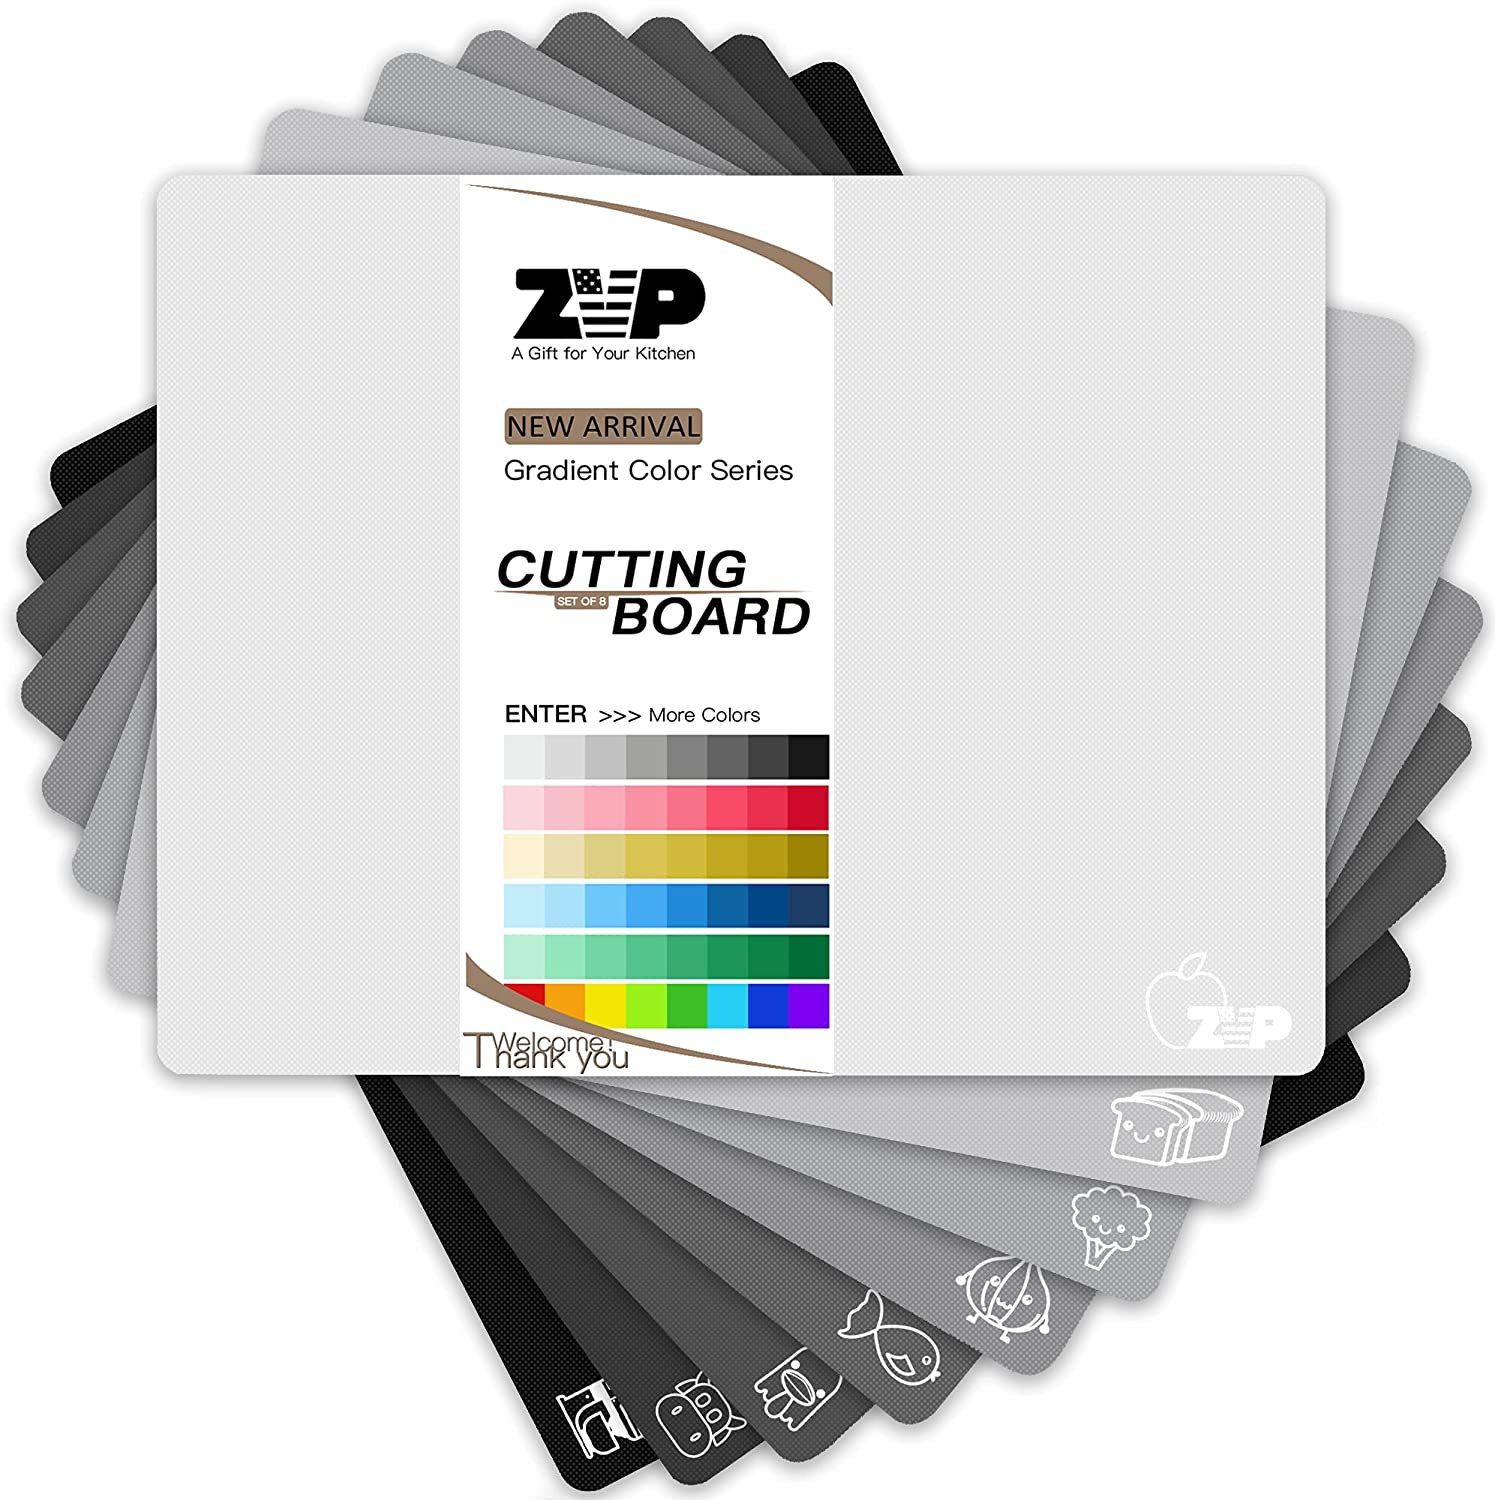 ZVP Flexible Plastic excellence Cutting Board Set sold out Color Gradient Colo 8 of